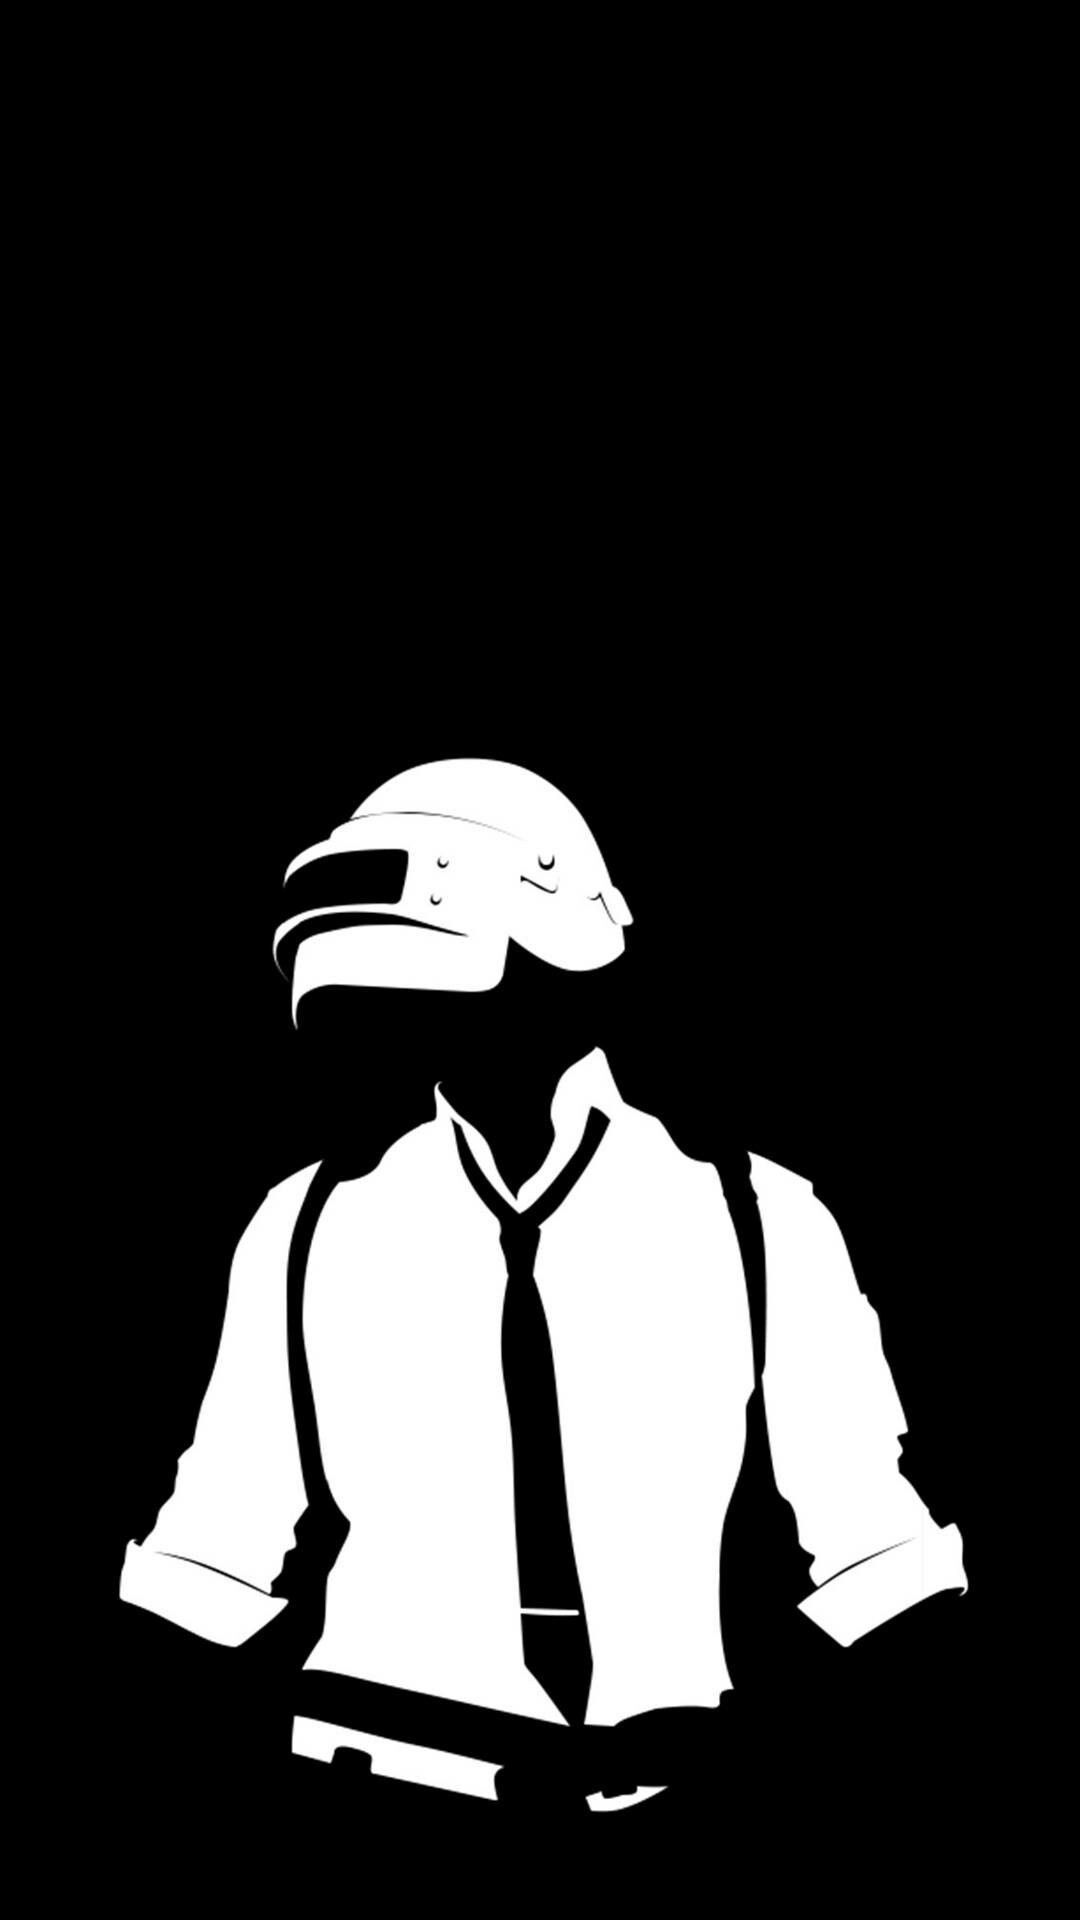 Pin by Unknow 323 on Pubg Mobile Wallpaper   Game wallpaper